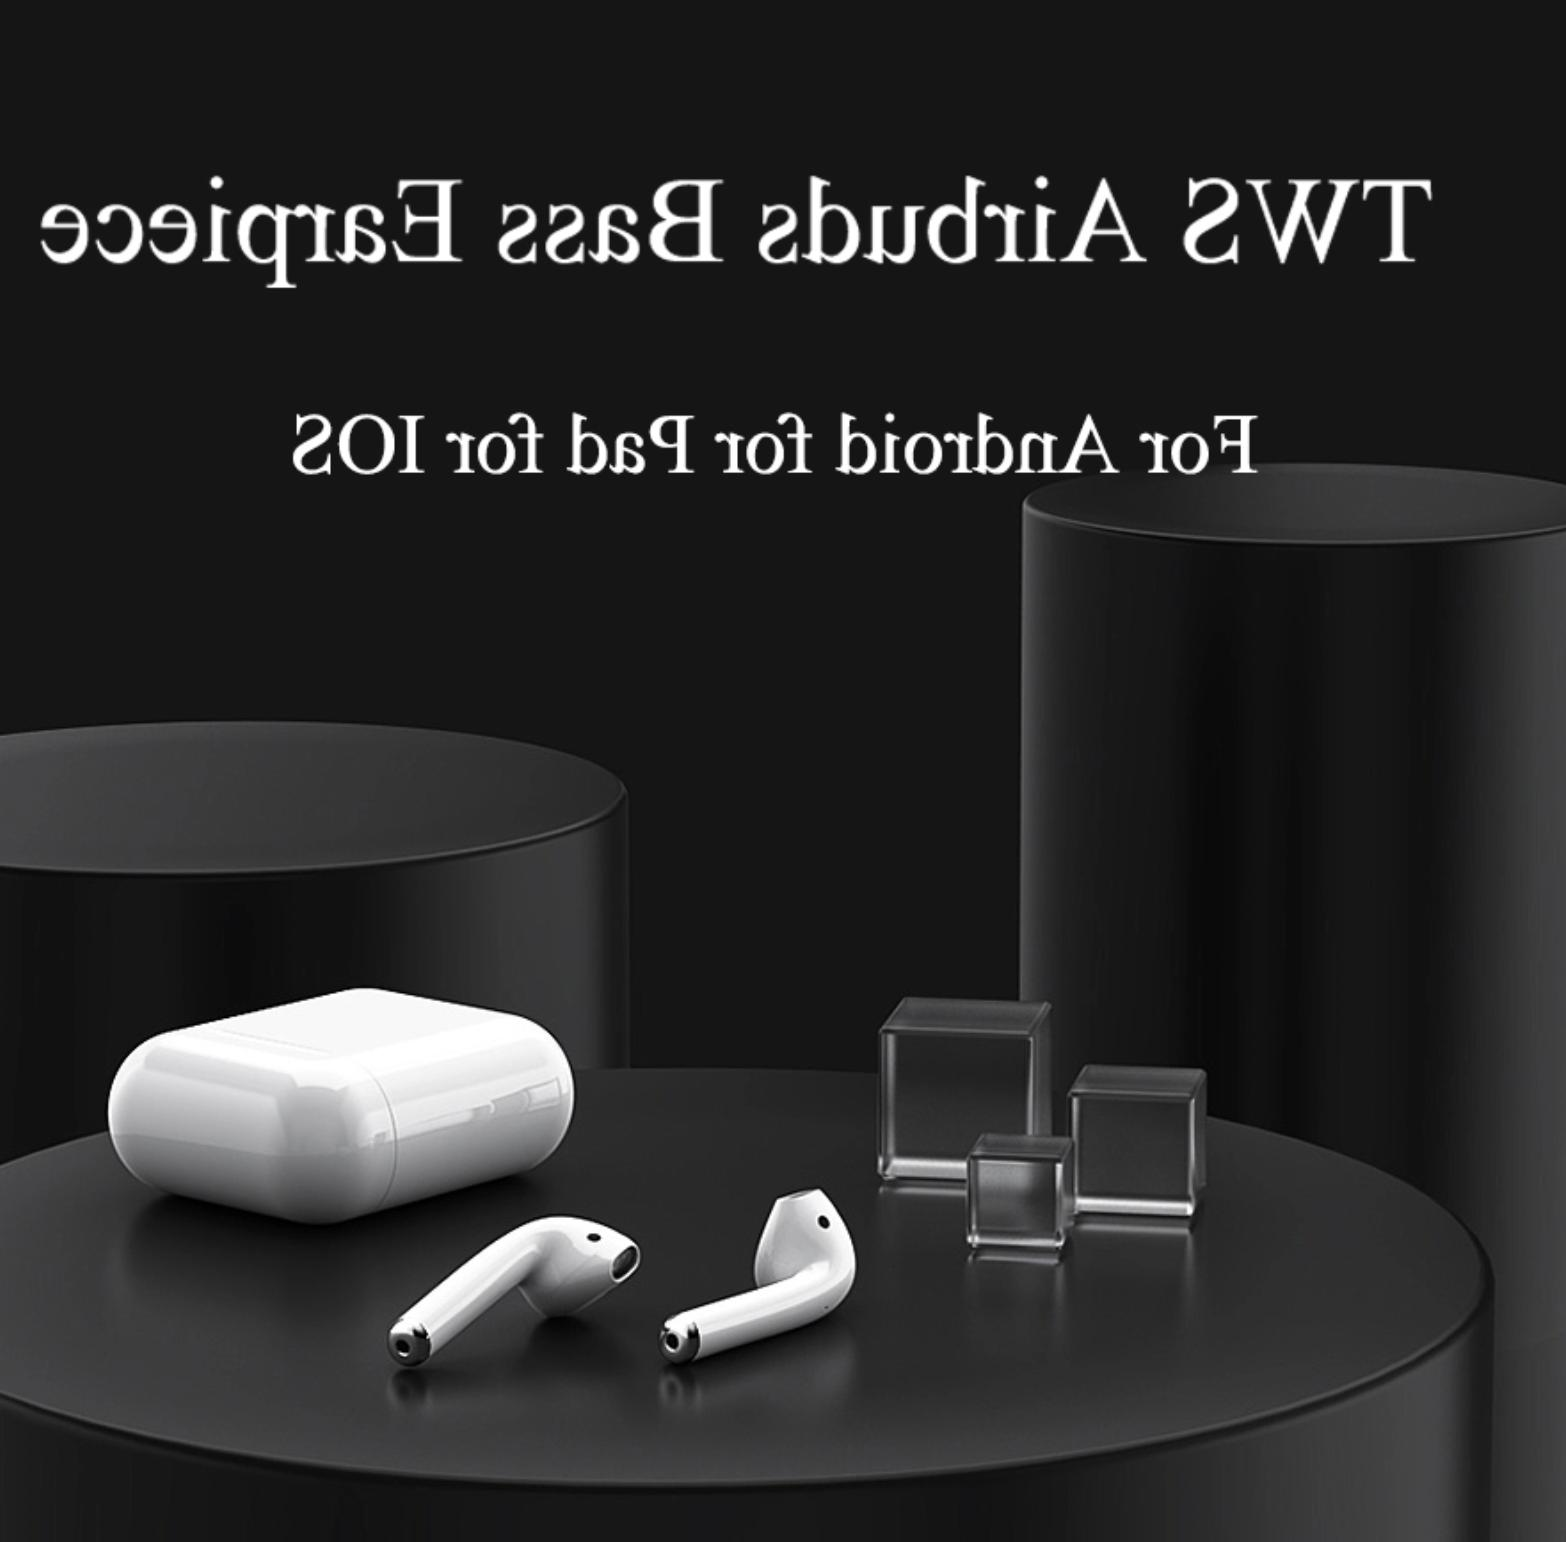 Wireless Earbuds Compatible With Apple AirPods